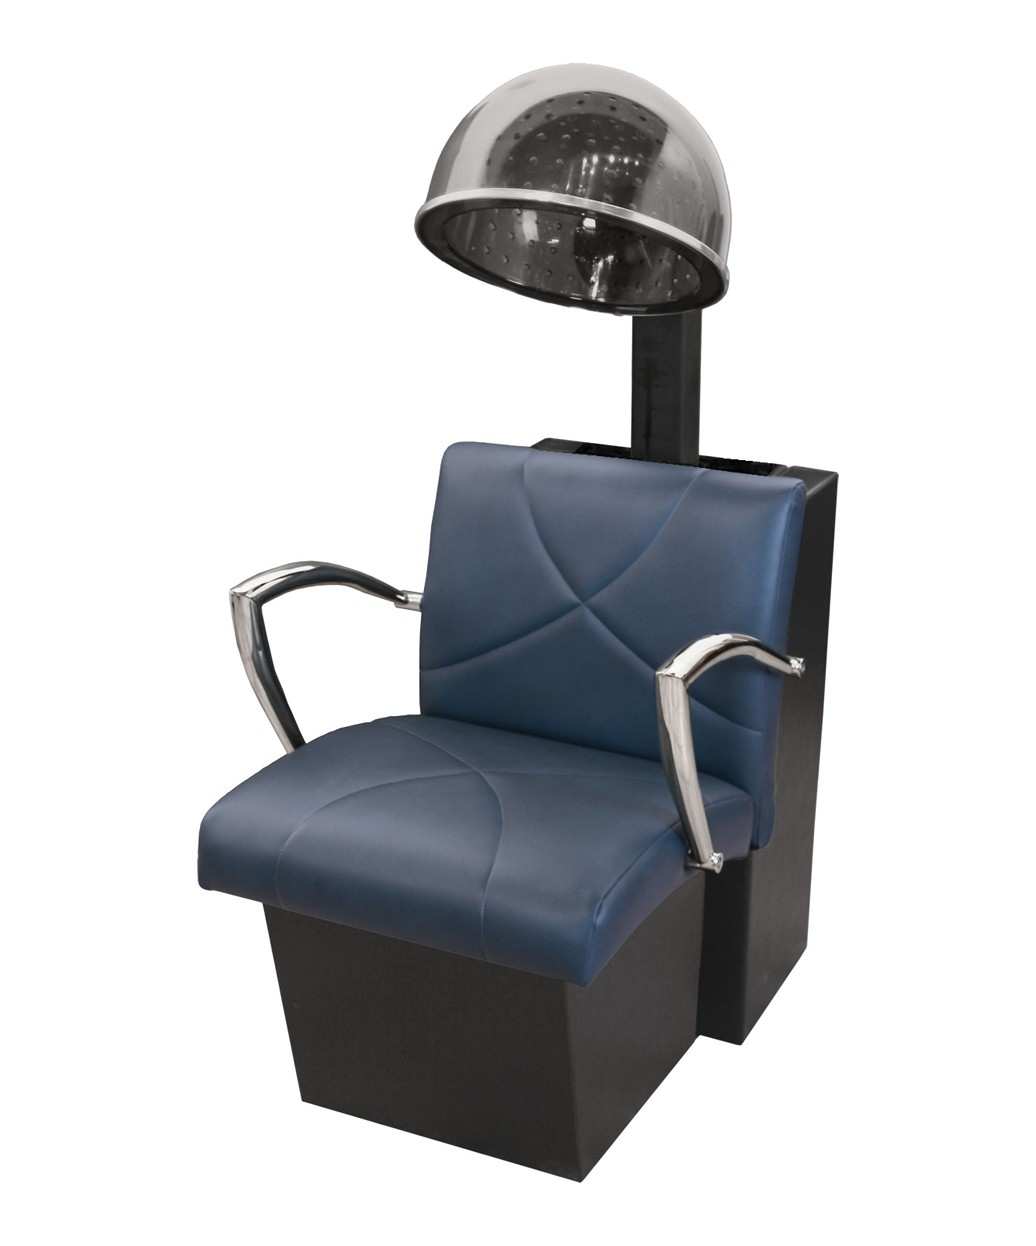 4920D Callie Dryer Chair with Collins SolAir Dryer